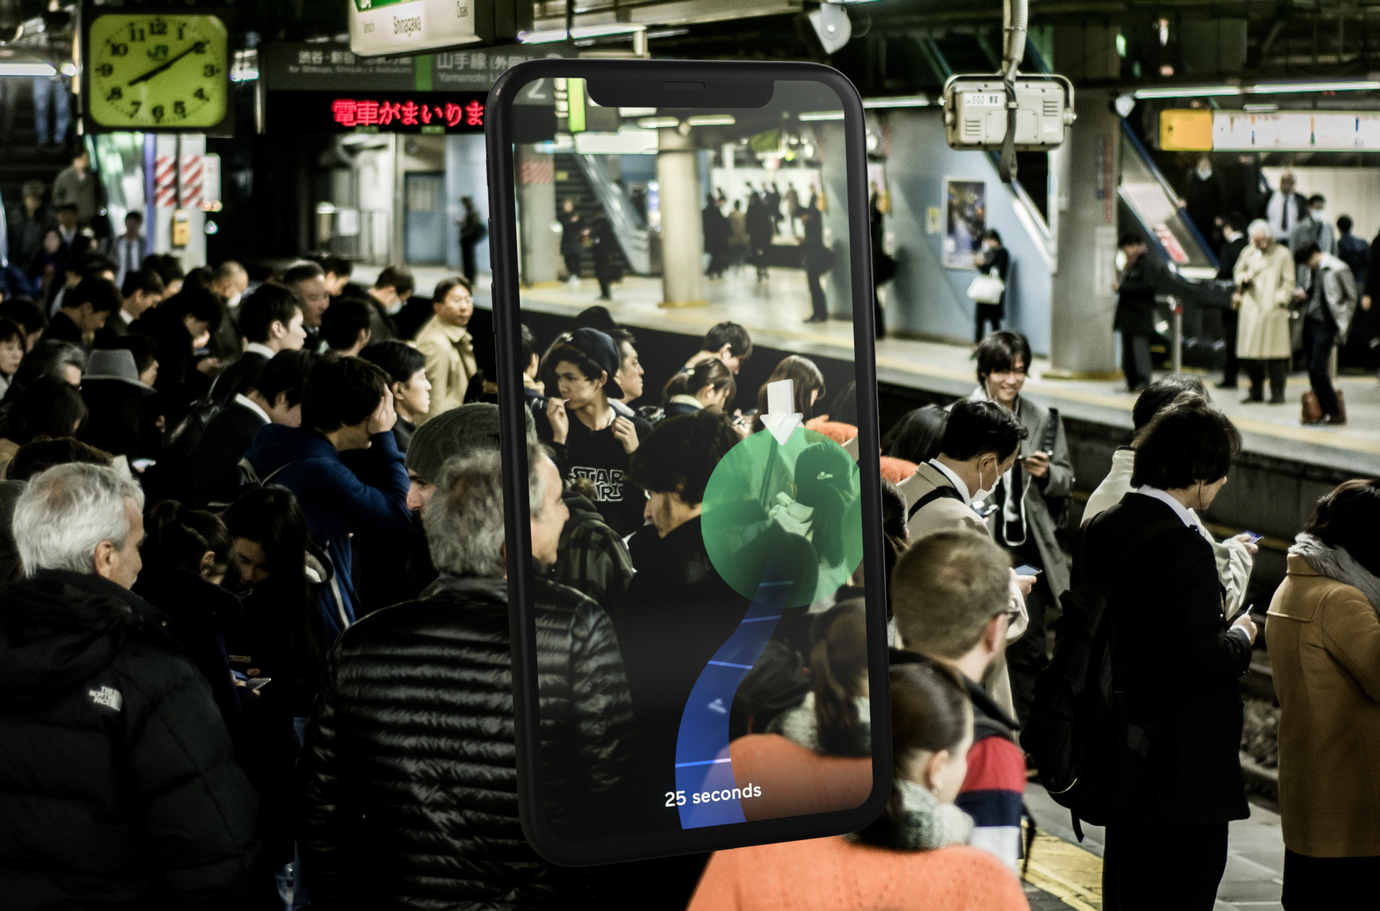 AR–Based Navigation in Crowded Public Spaces